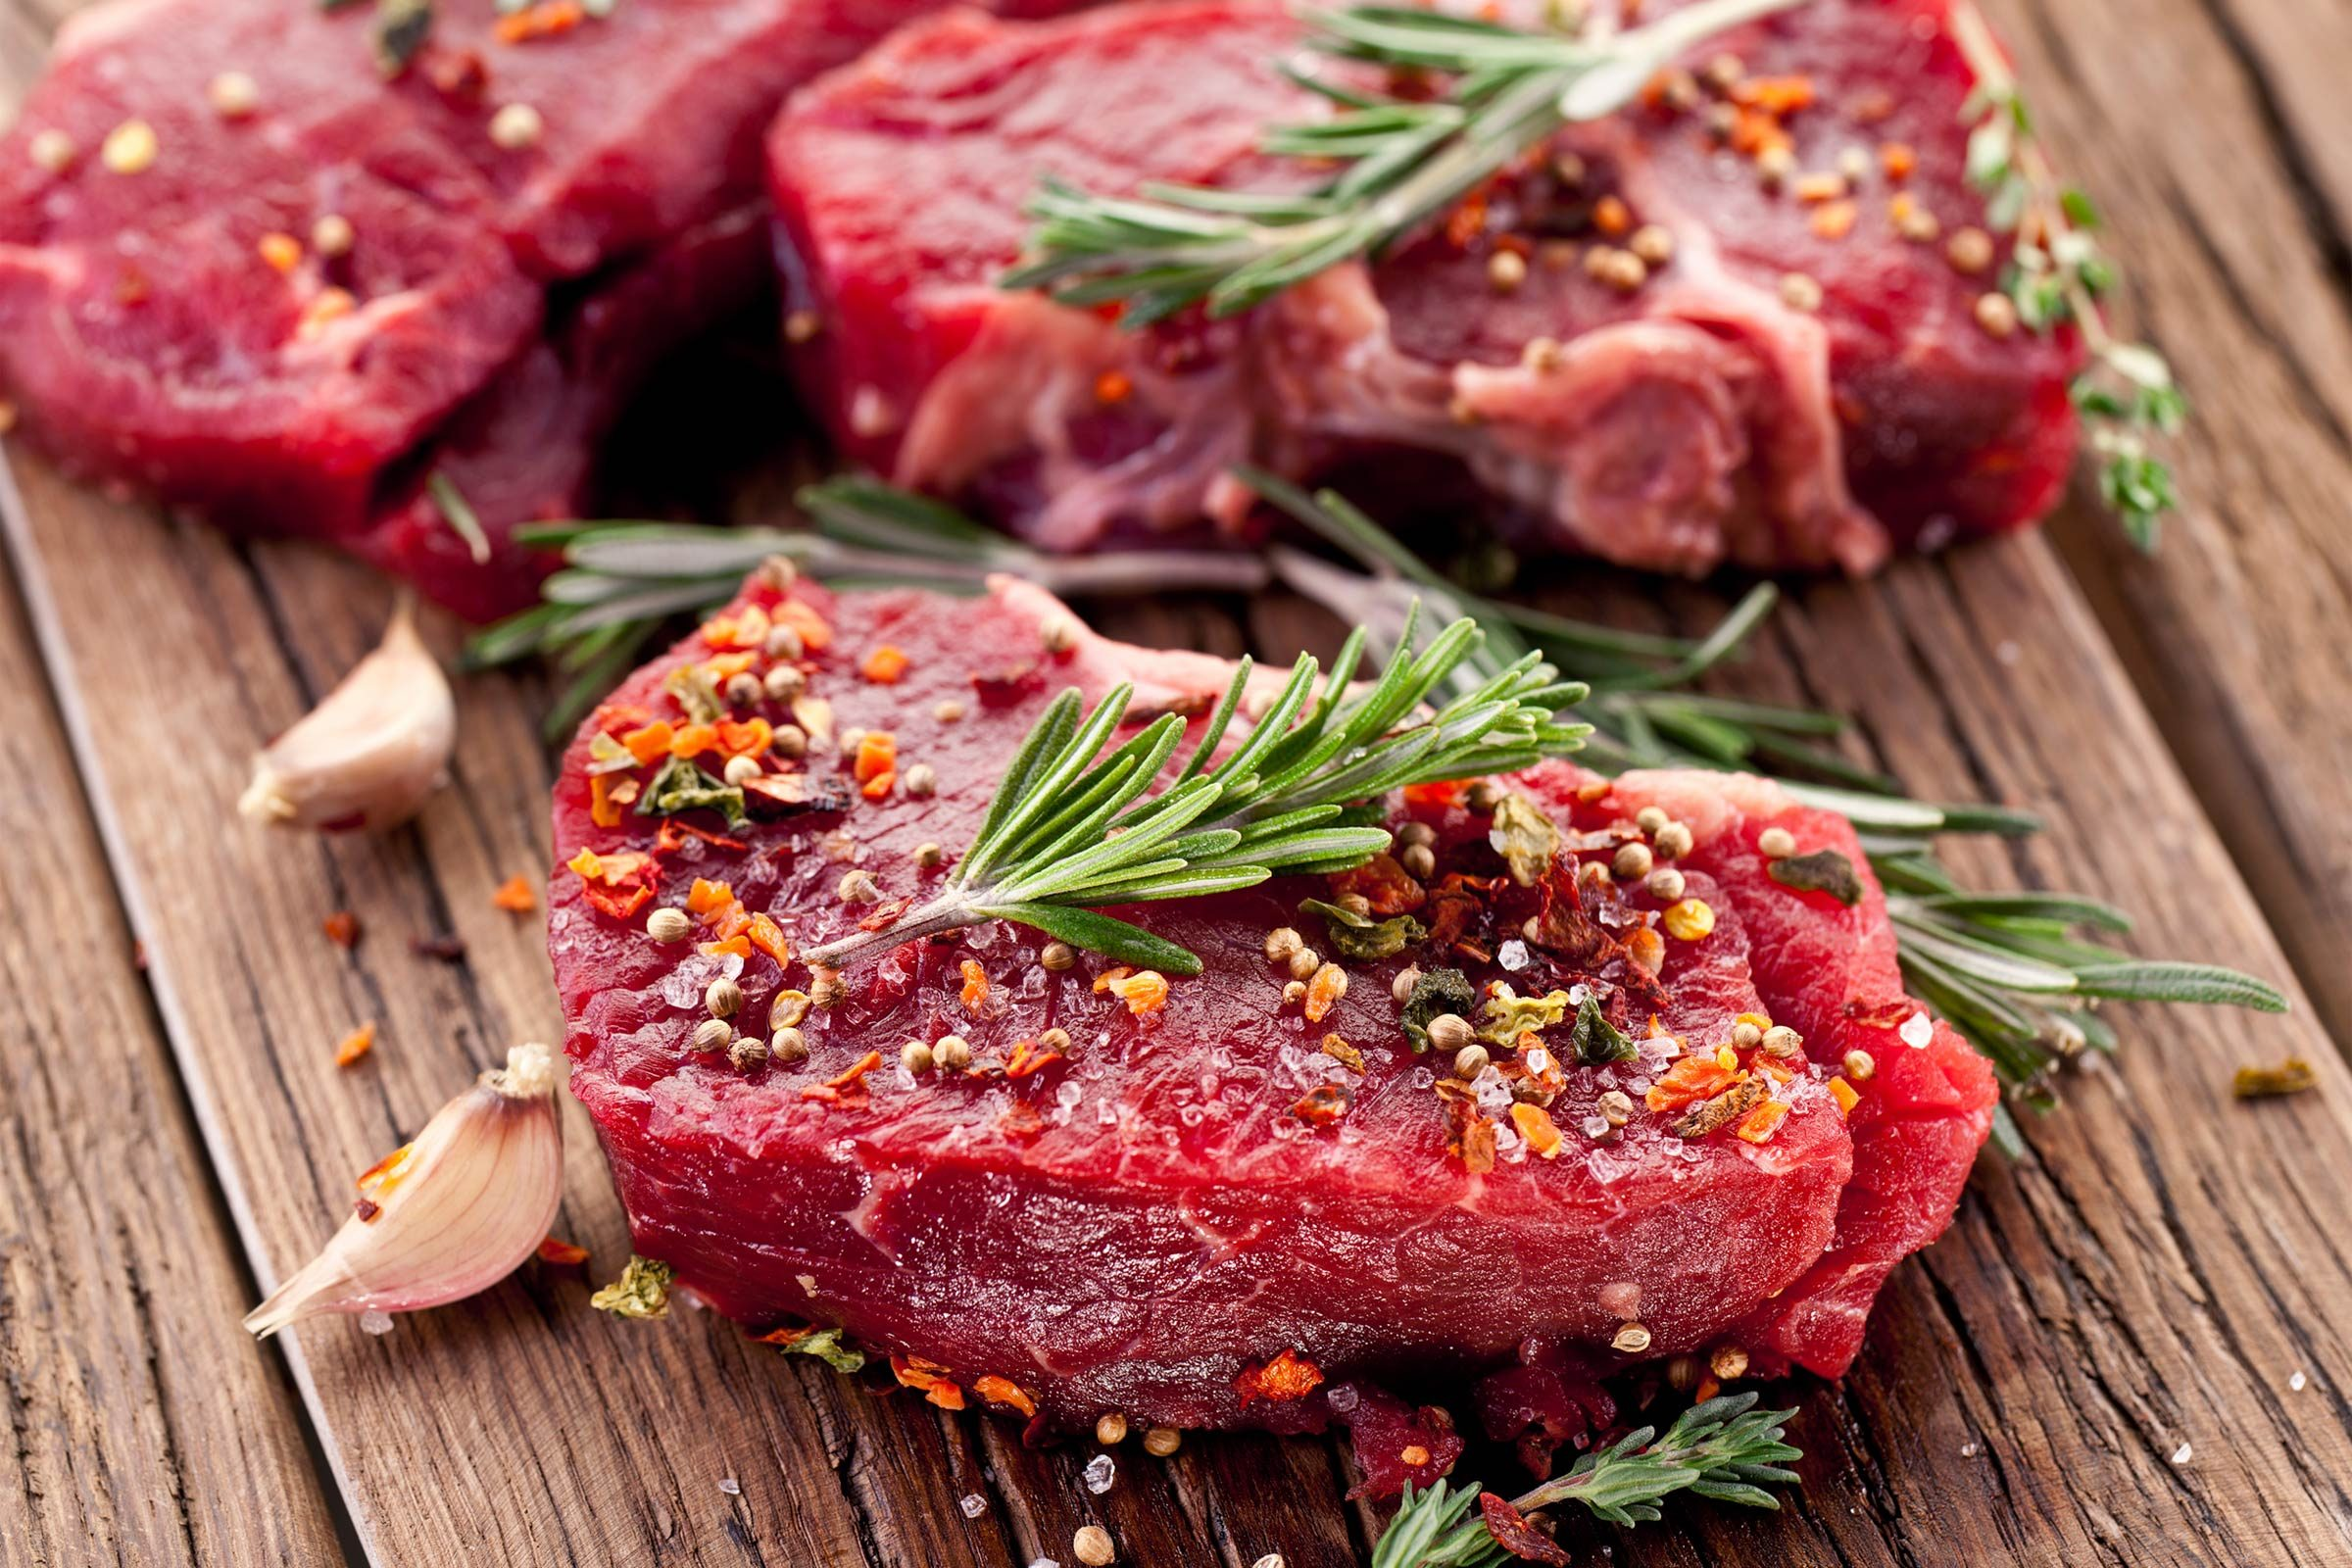 Where Does Fresh Thyme Get Their Meat